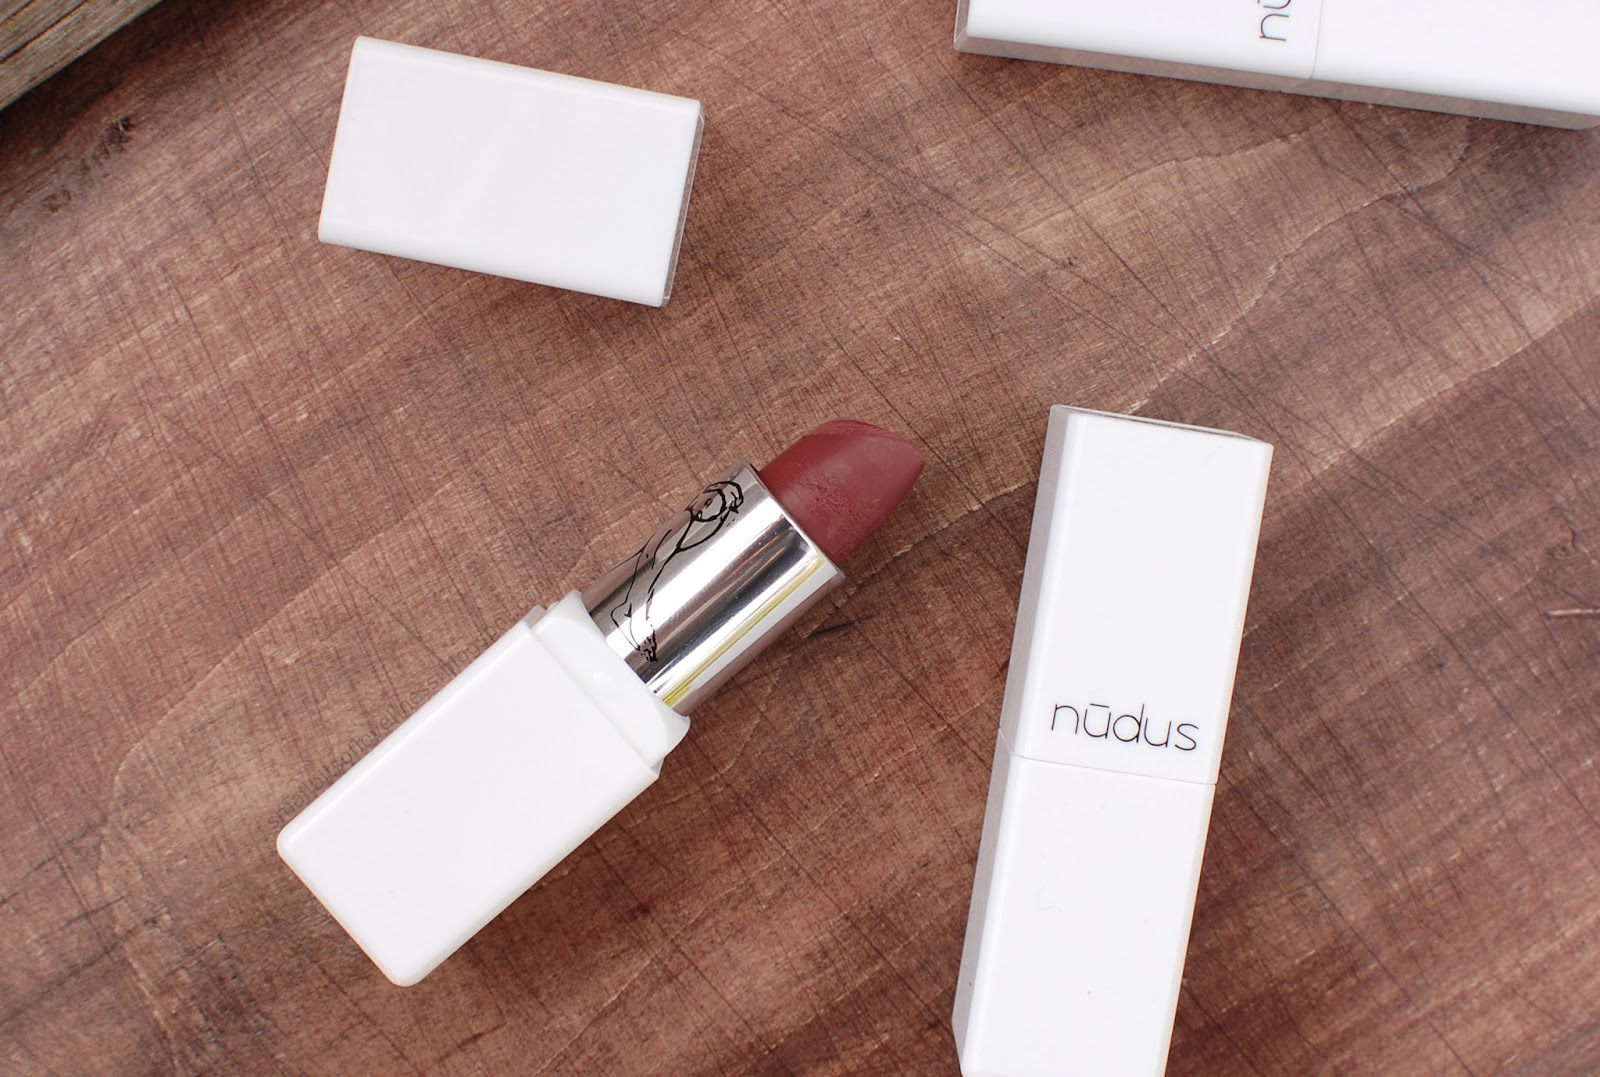 Nudus Lipstick 27 Kisses